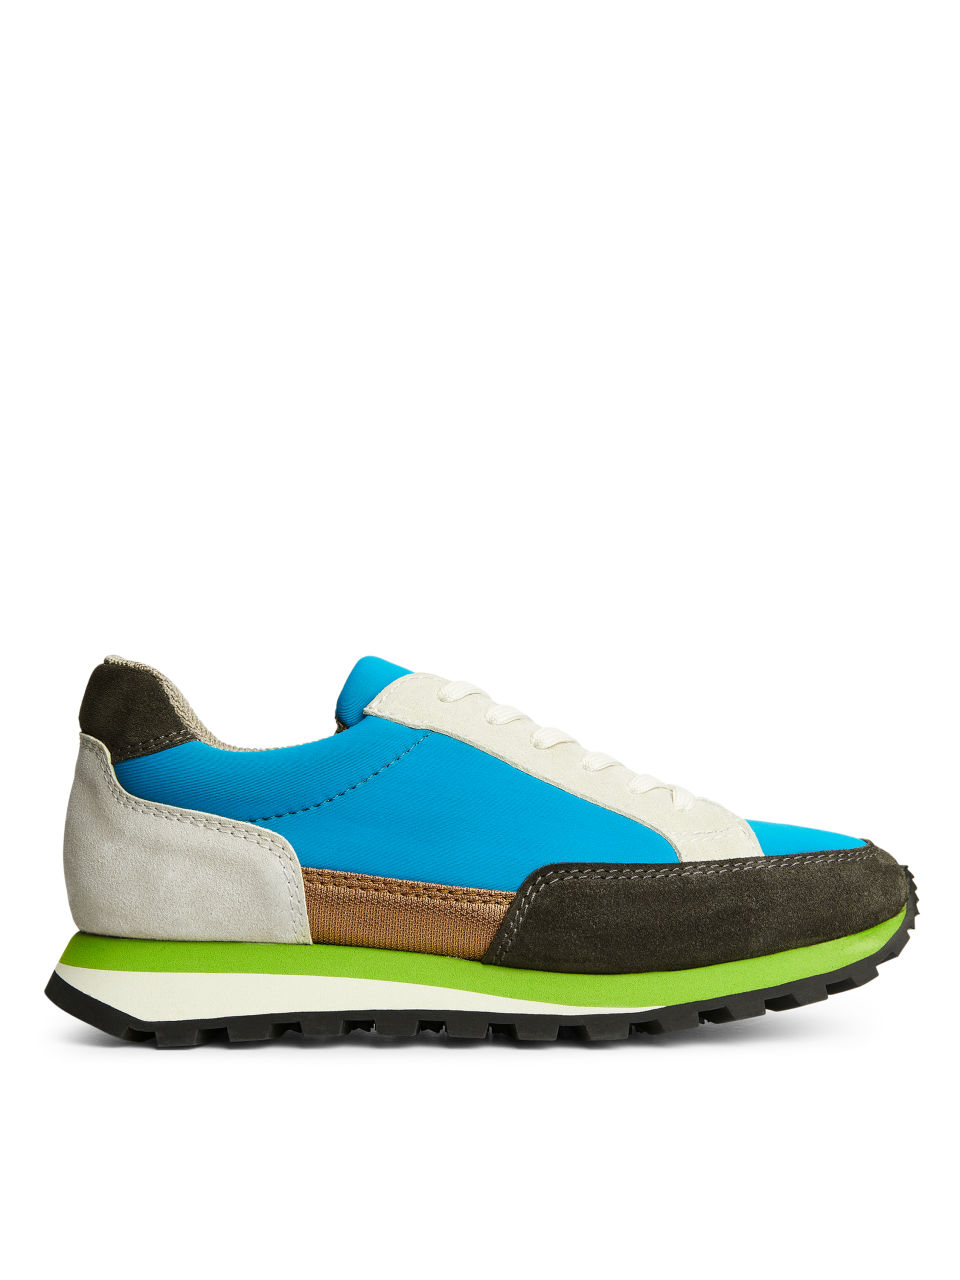 Jogger Low - Turquoise